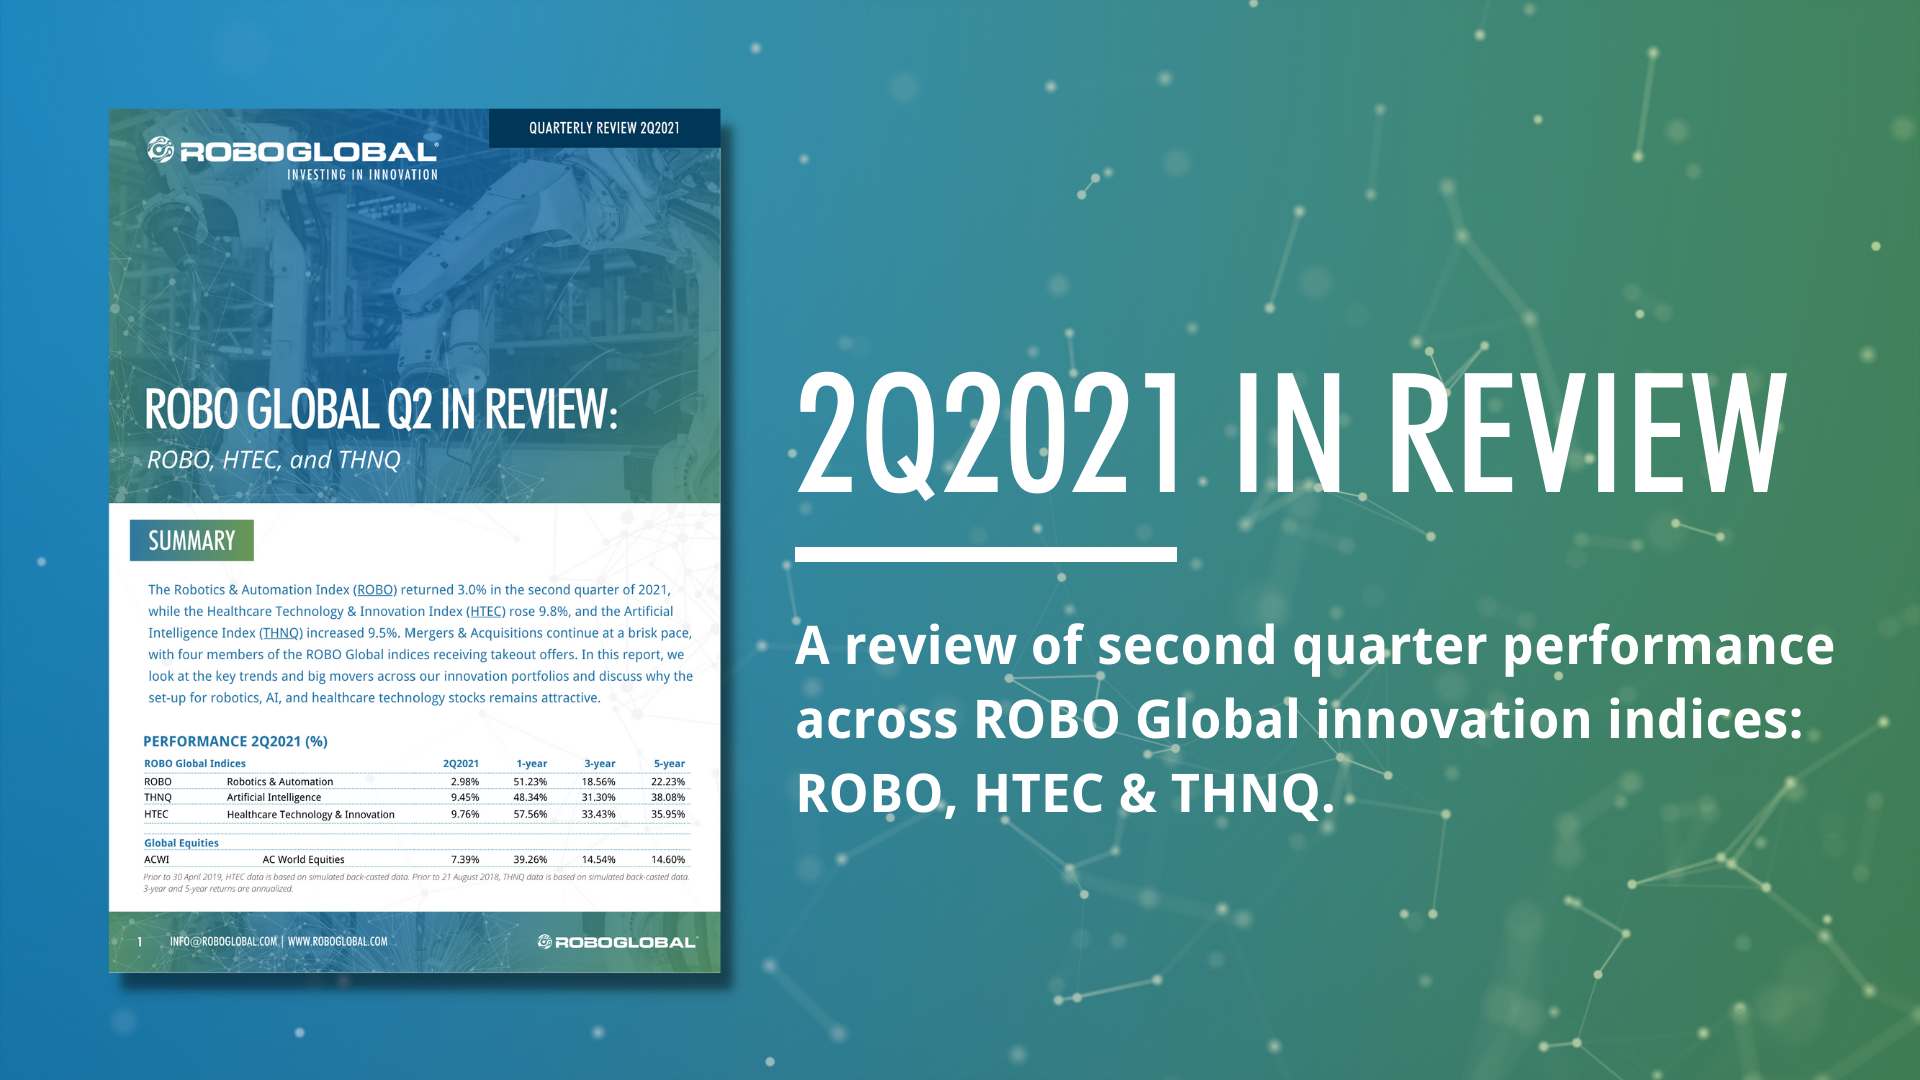 Q2 In Review: ROBO Global Innovation Indices